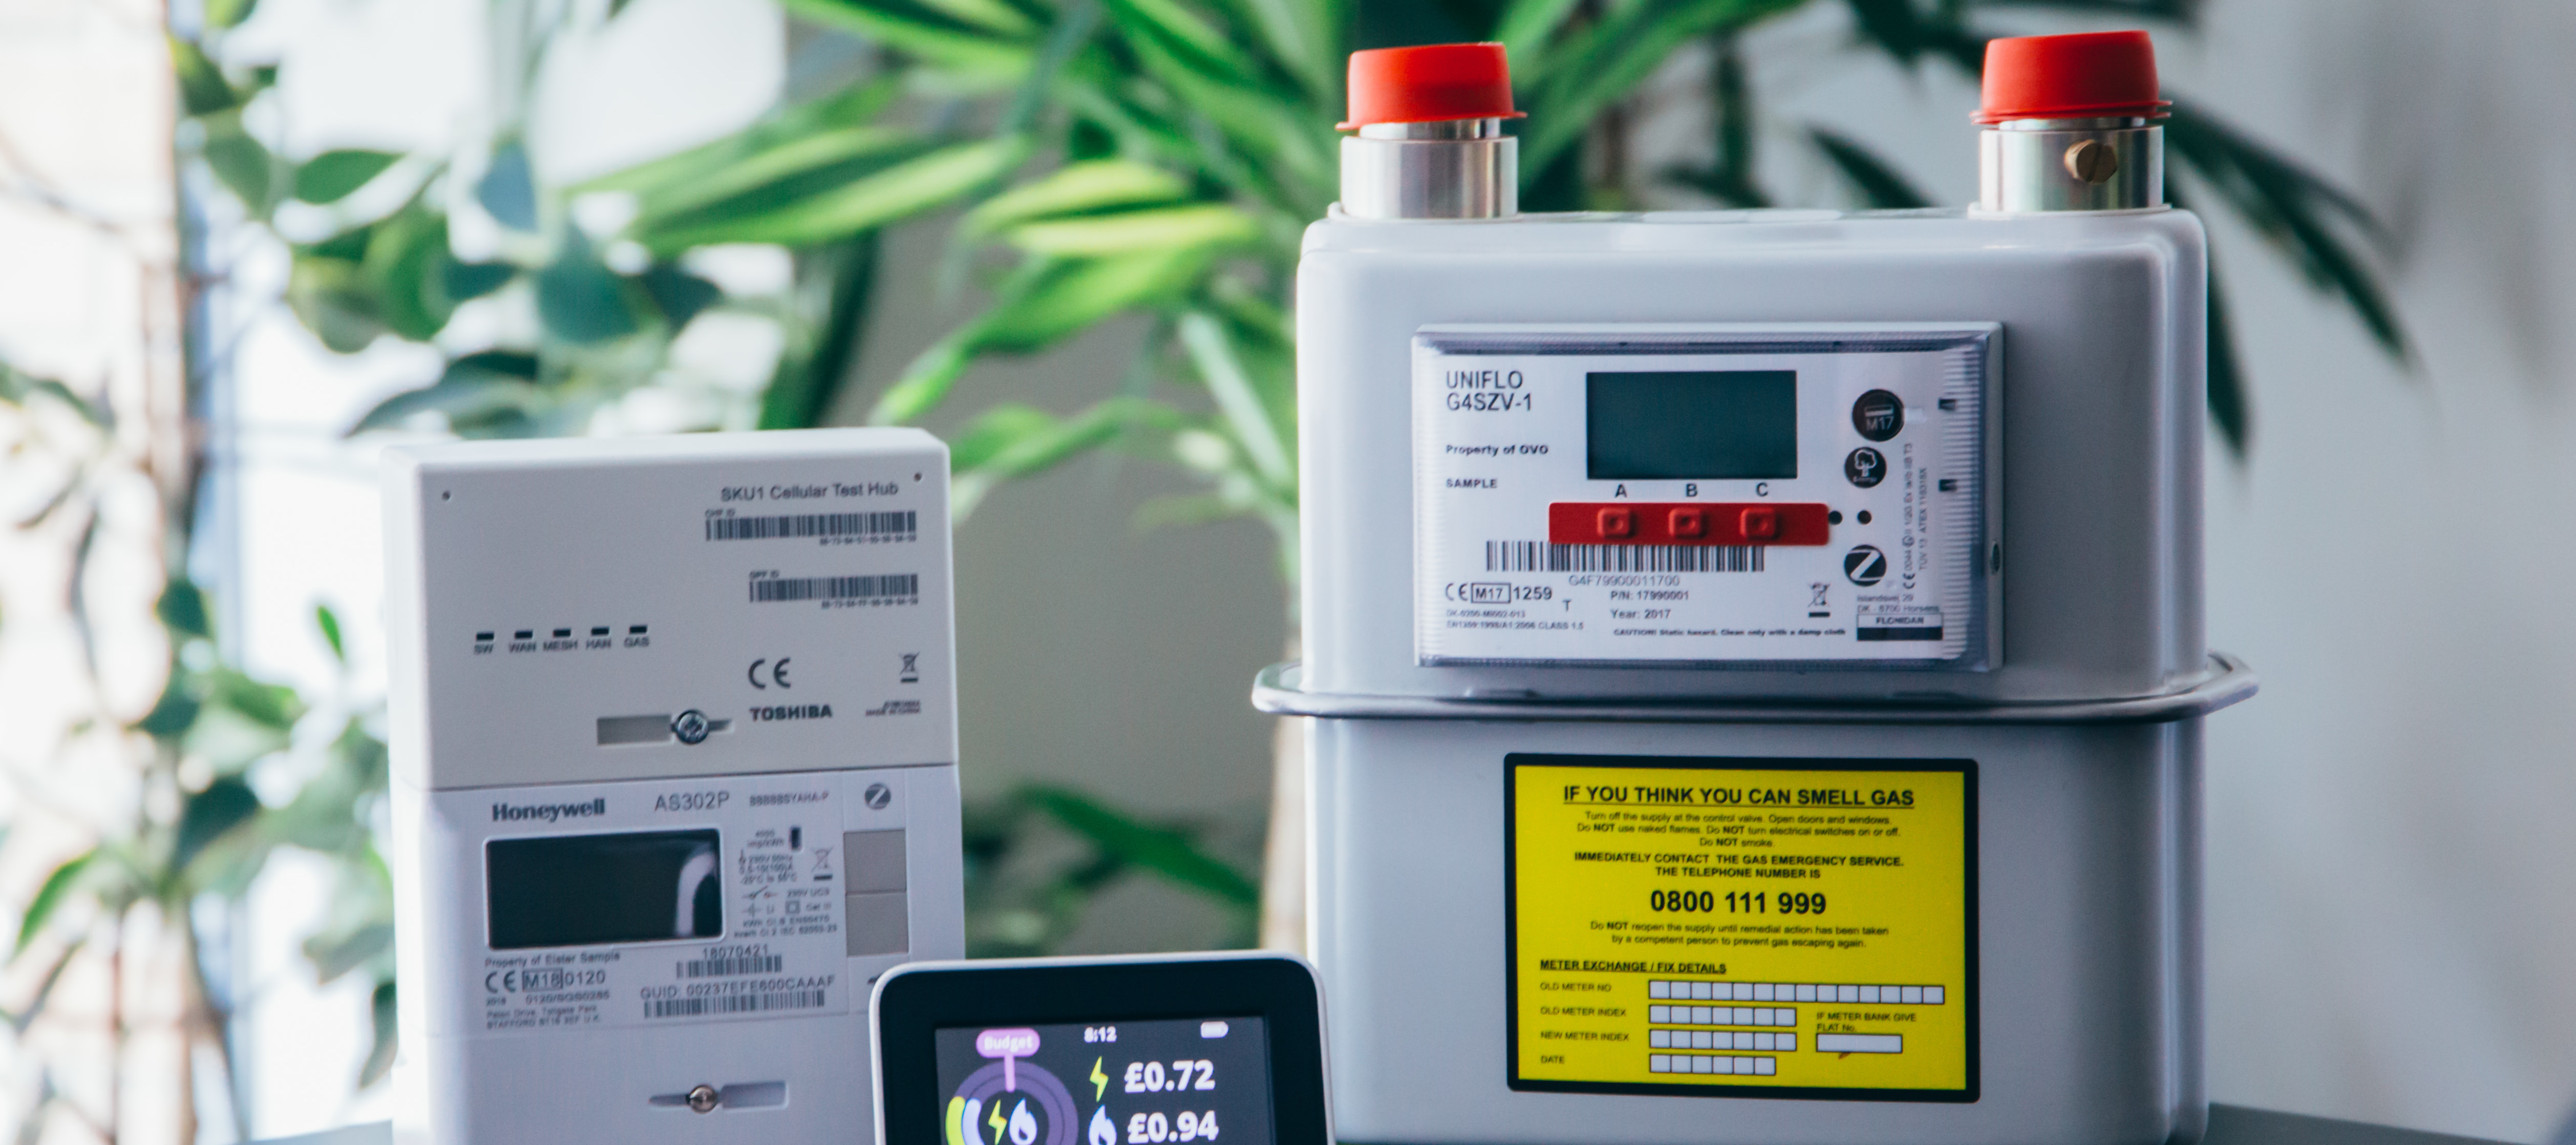 Have storage heaters, underfloor heating or other 5th terminal appliances? Now you can get a SMETS2 smart meter - DIY tutorial series